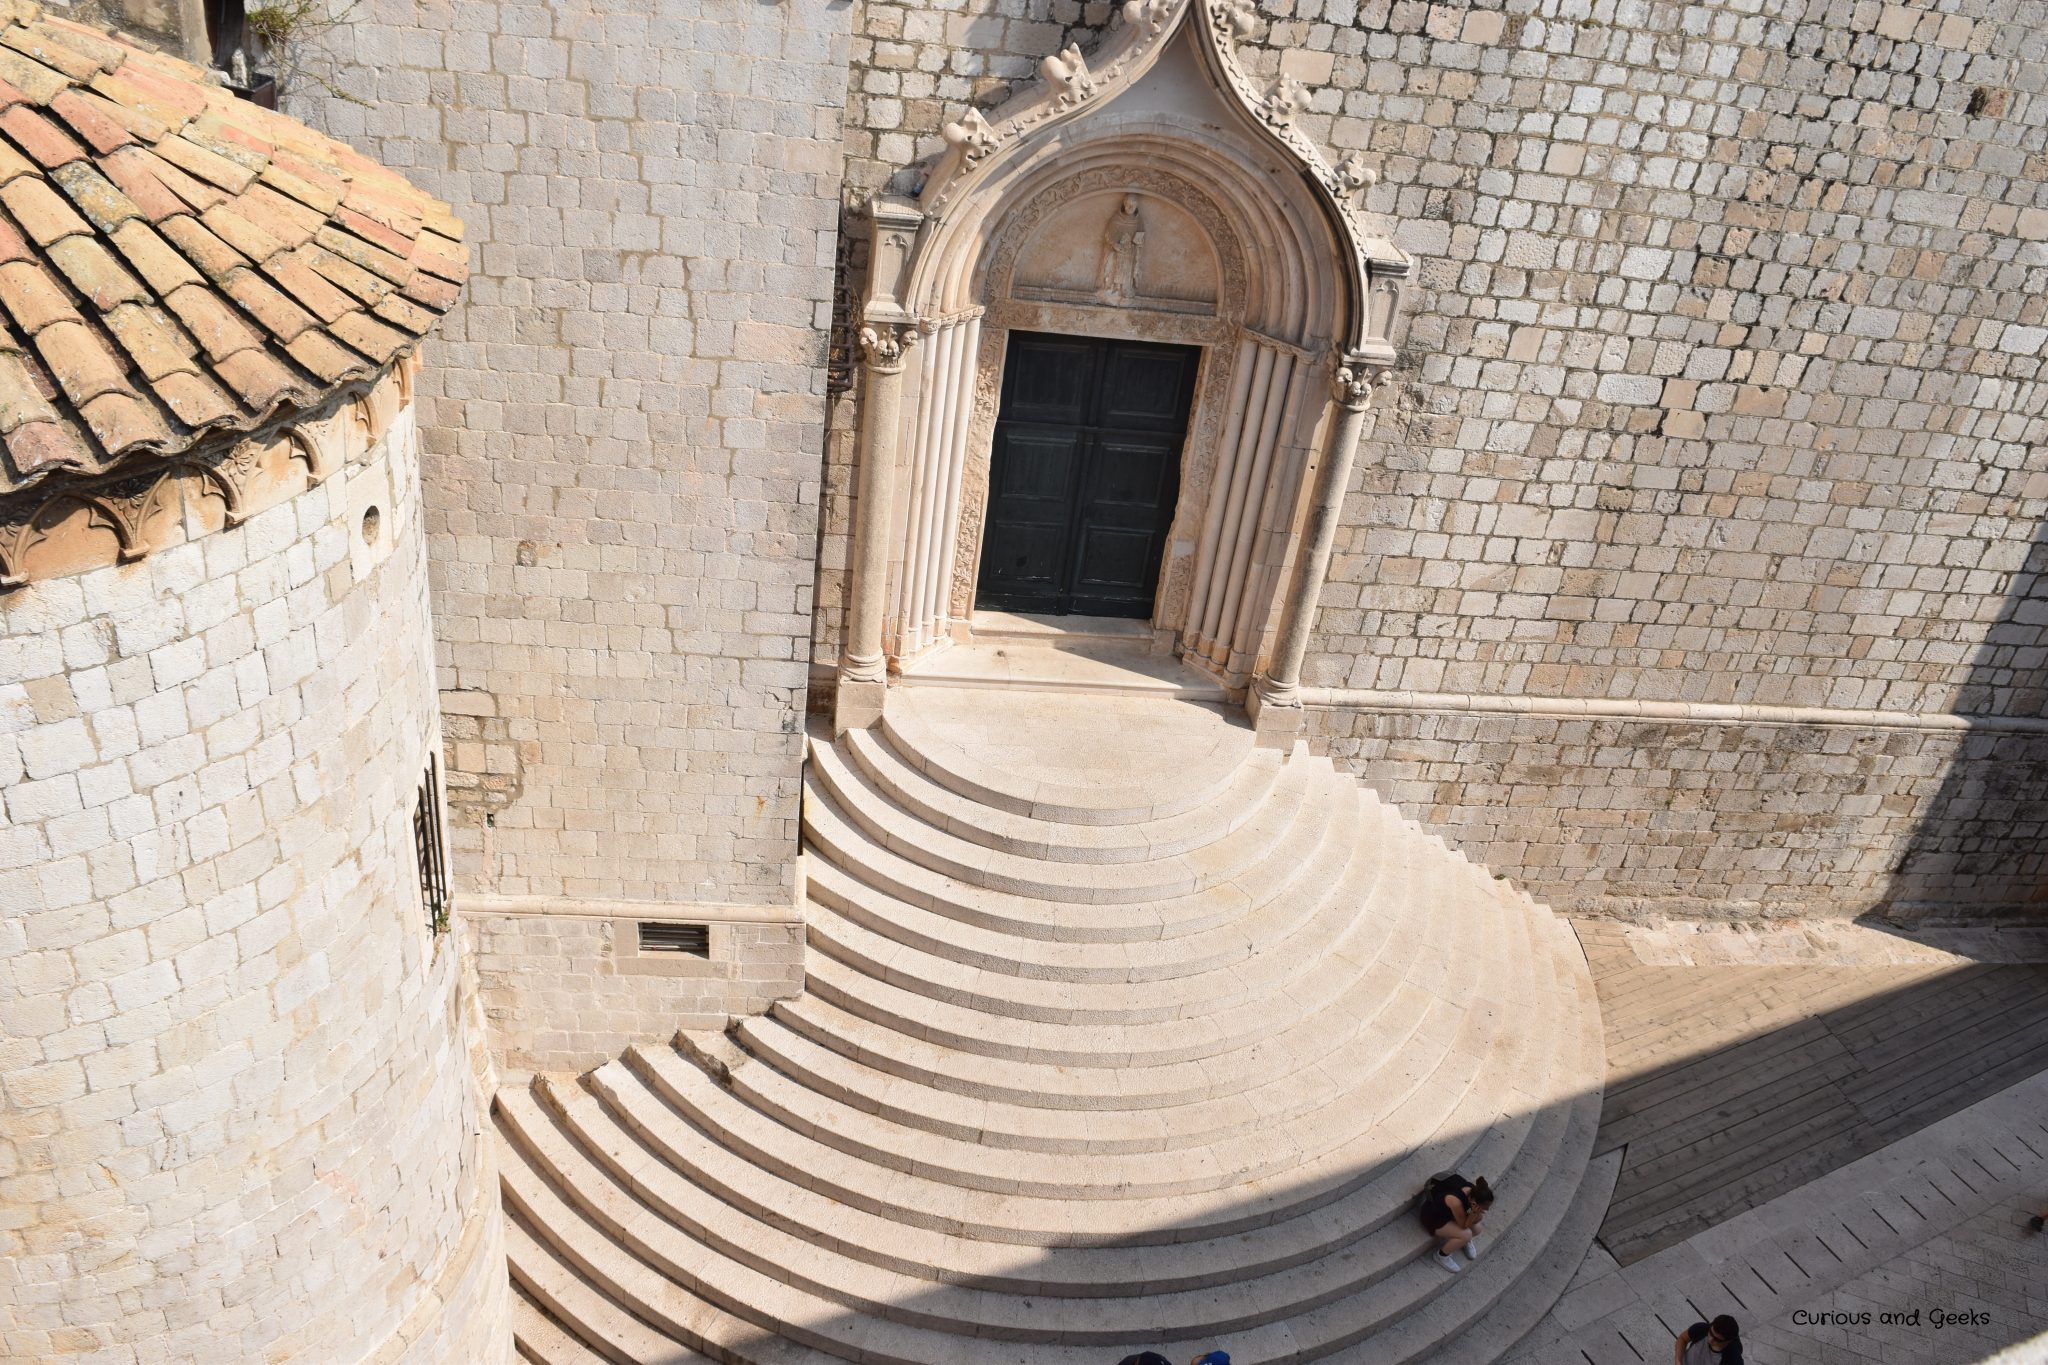 View from the city walls in Dubrovnik - filming location for s02e05 of GOT